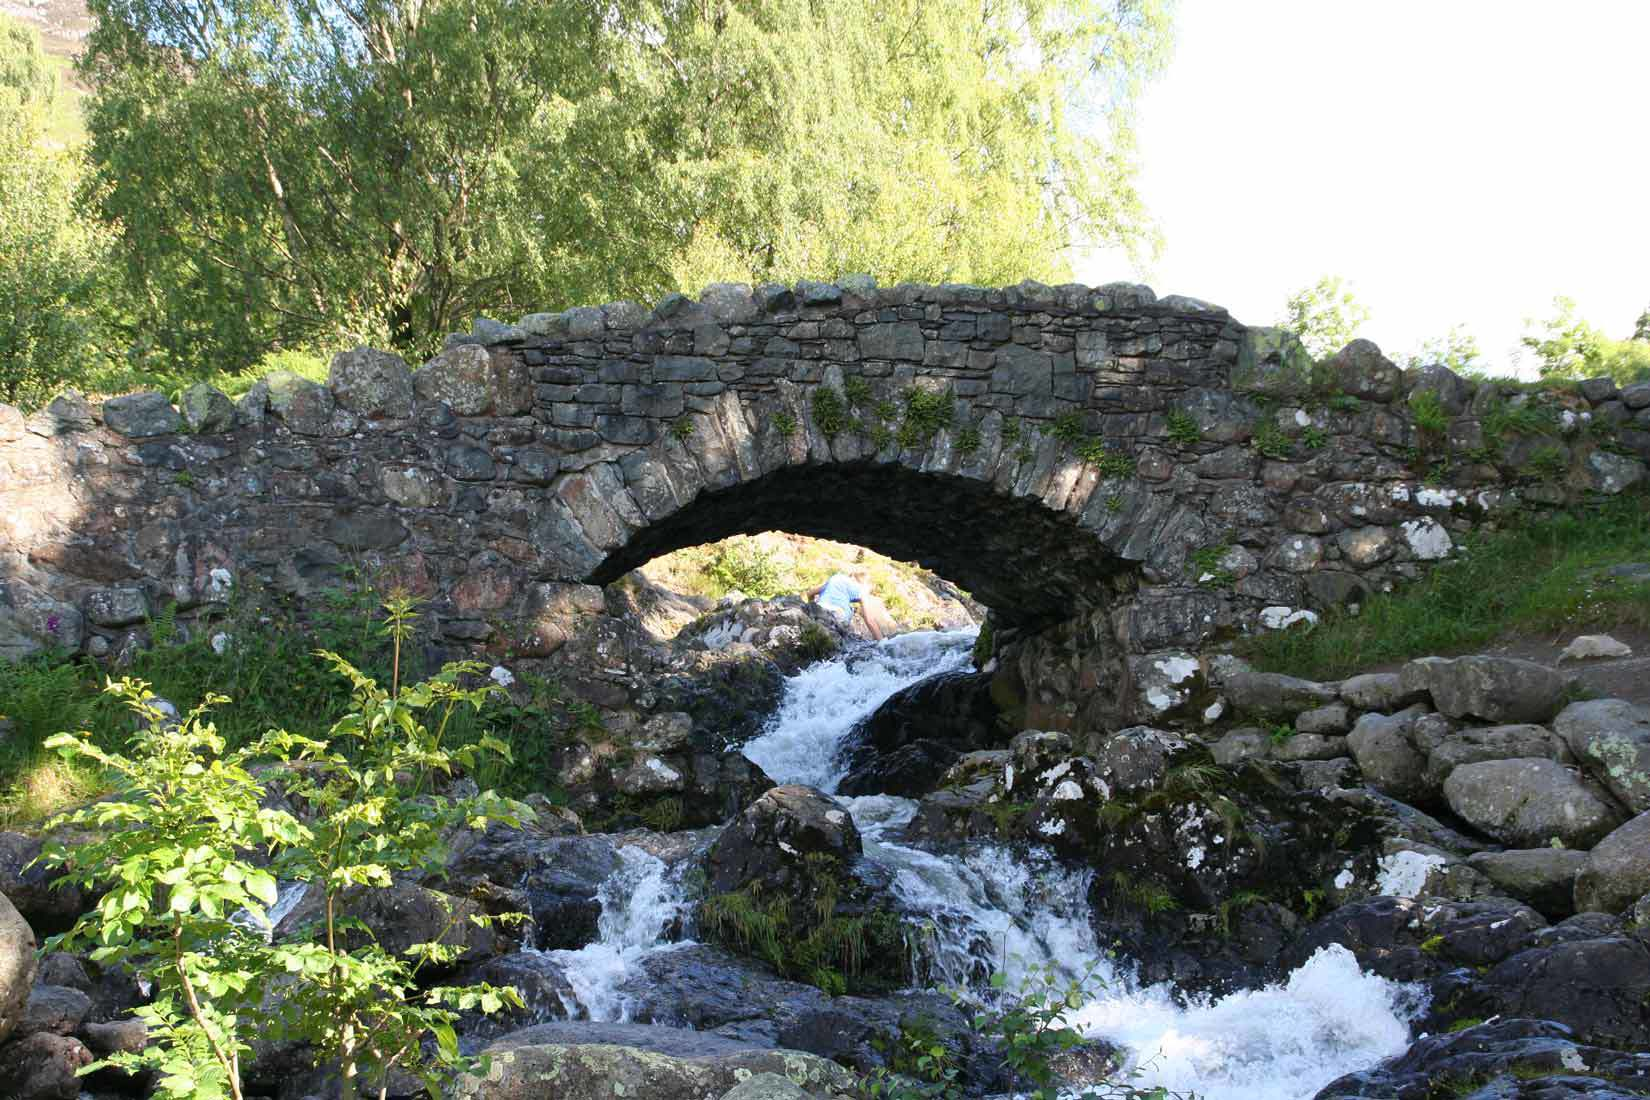 Lake-District-Stone-Bridge.jpg